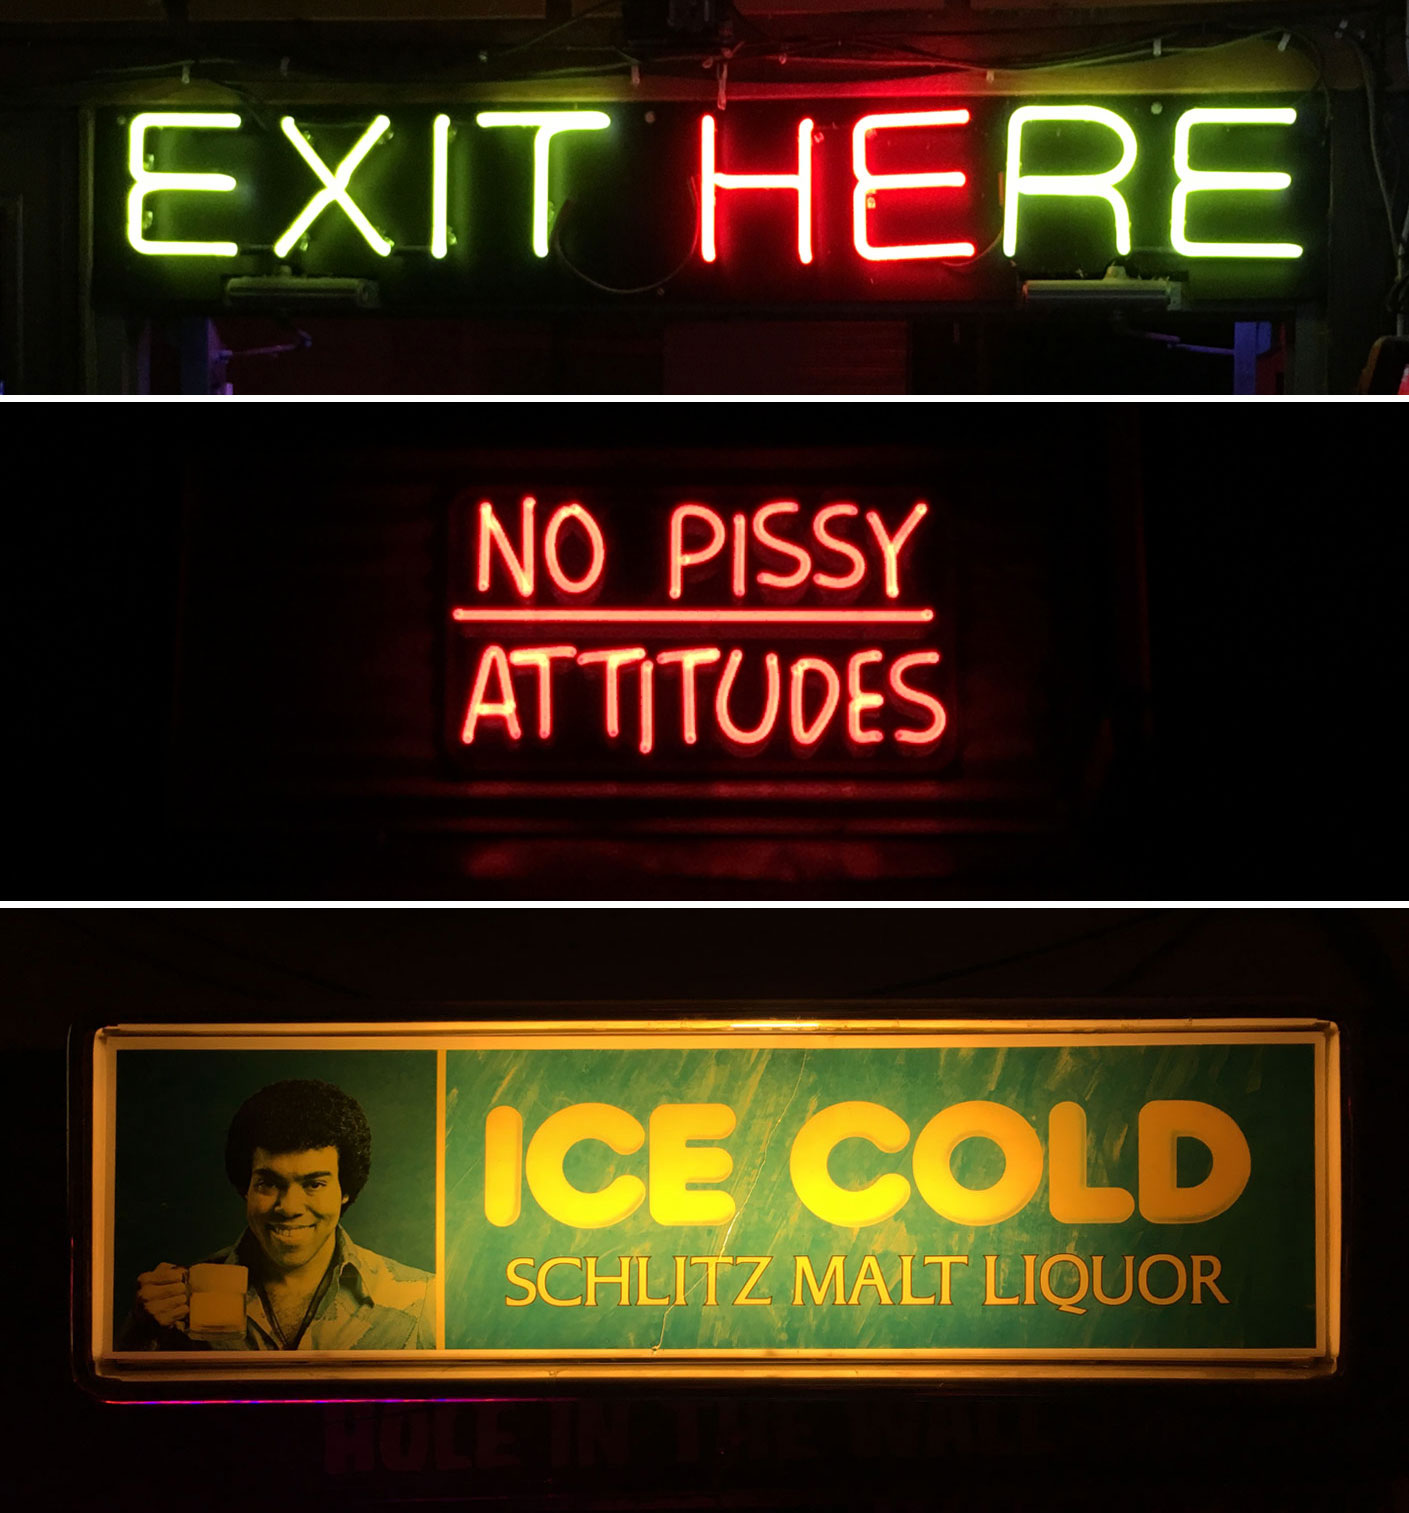 Various Glowing Signs